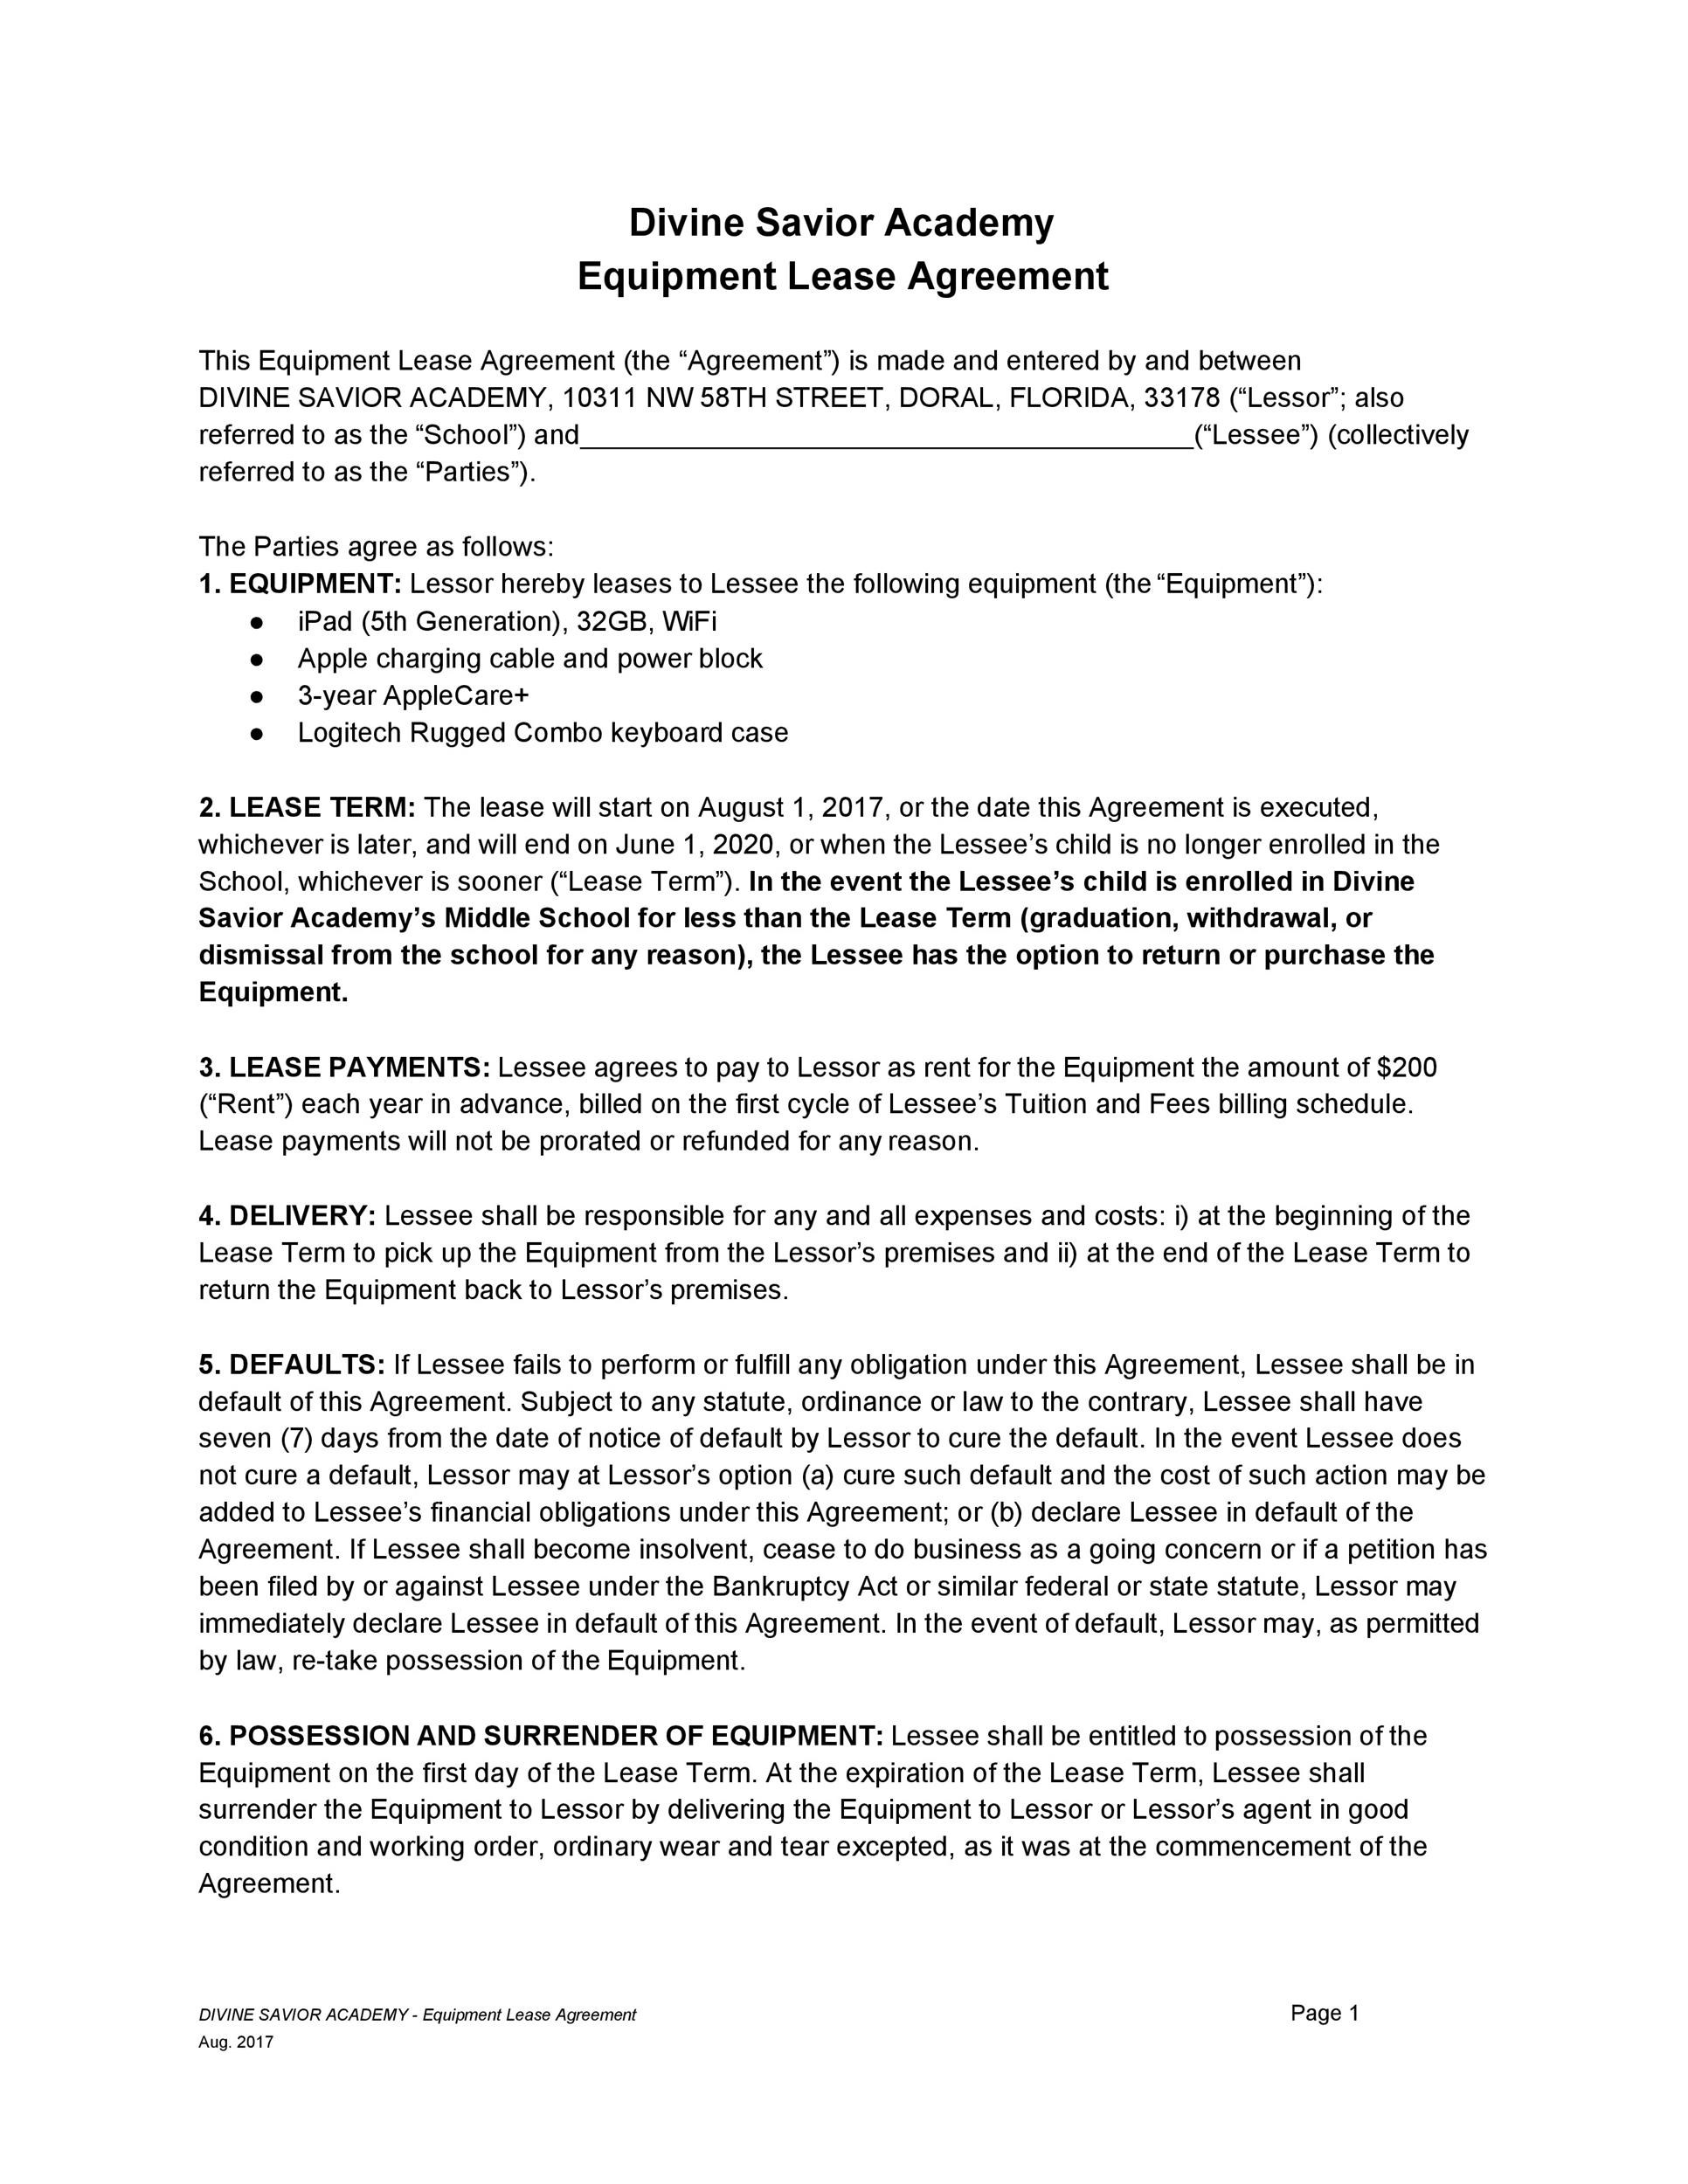 44 Simple Equipment Lease Agreement Templates ᐅ Template Lab